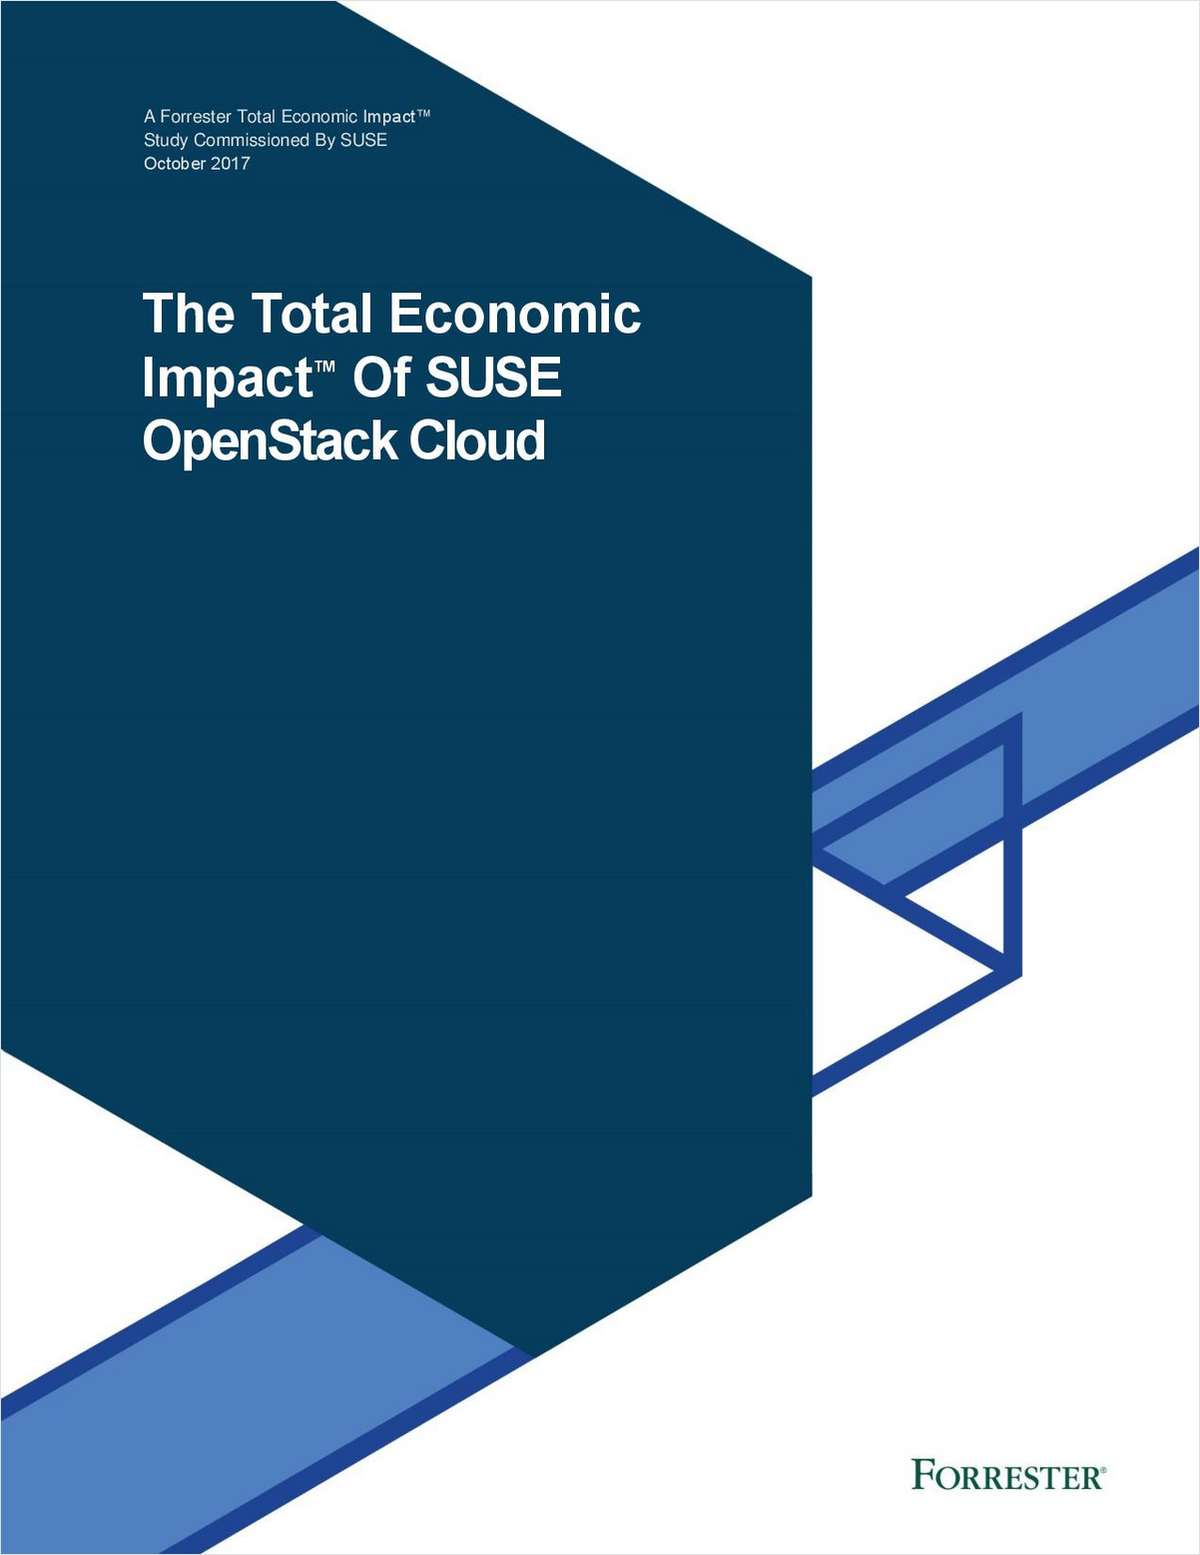 Forrester Consulting: The Total Economic Impact™ of SUSE OpenStack Cloud